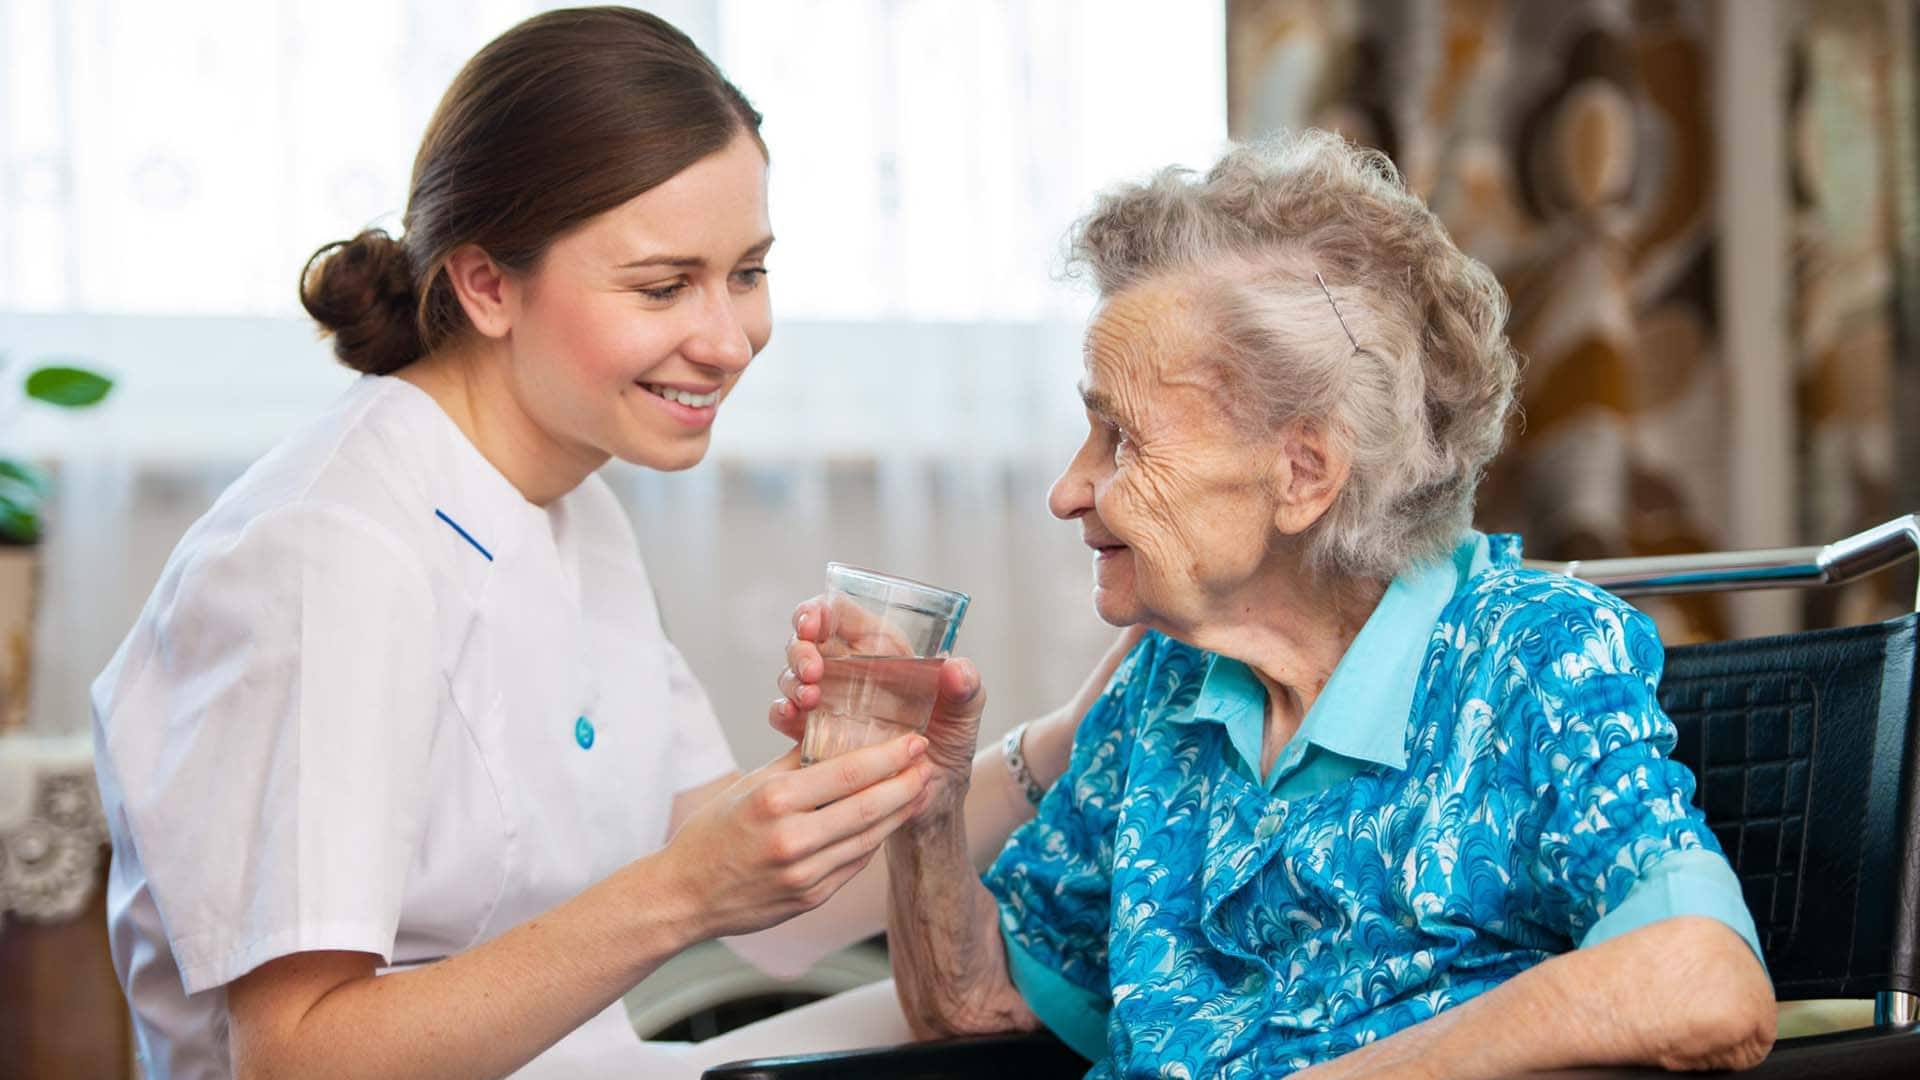 caregiver giving water to client during home care in-home services